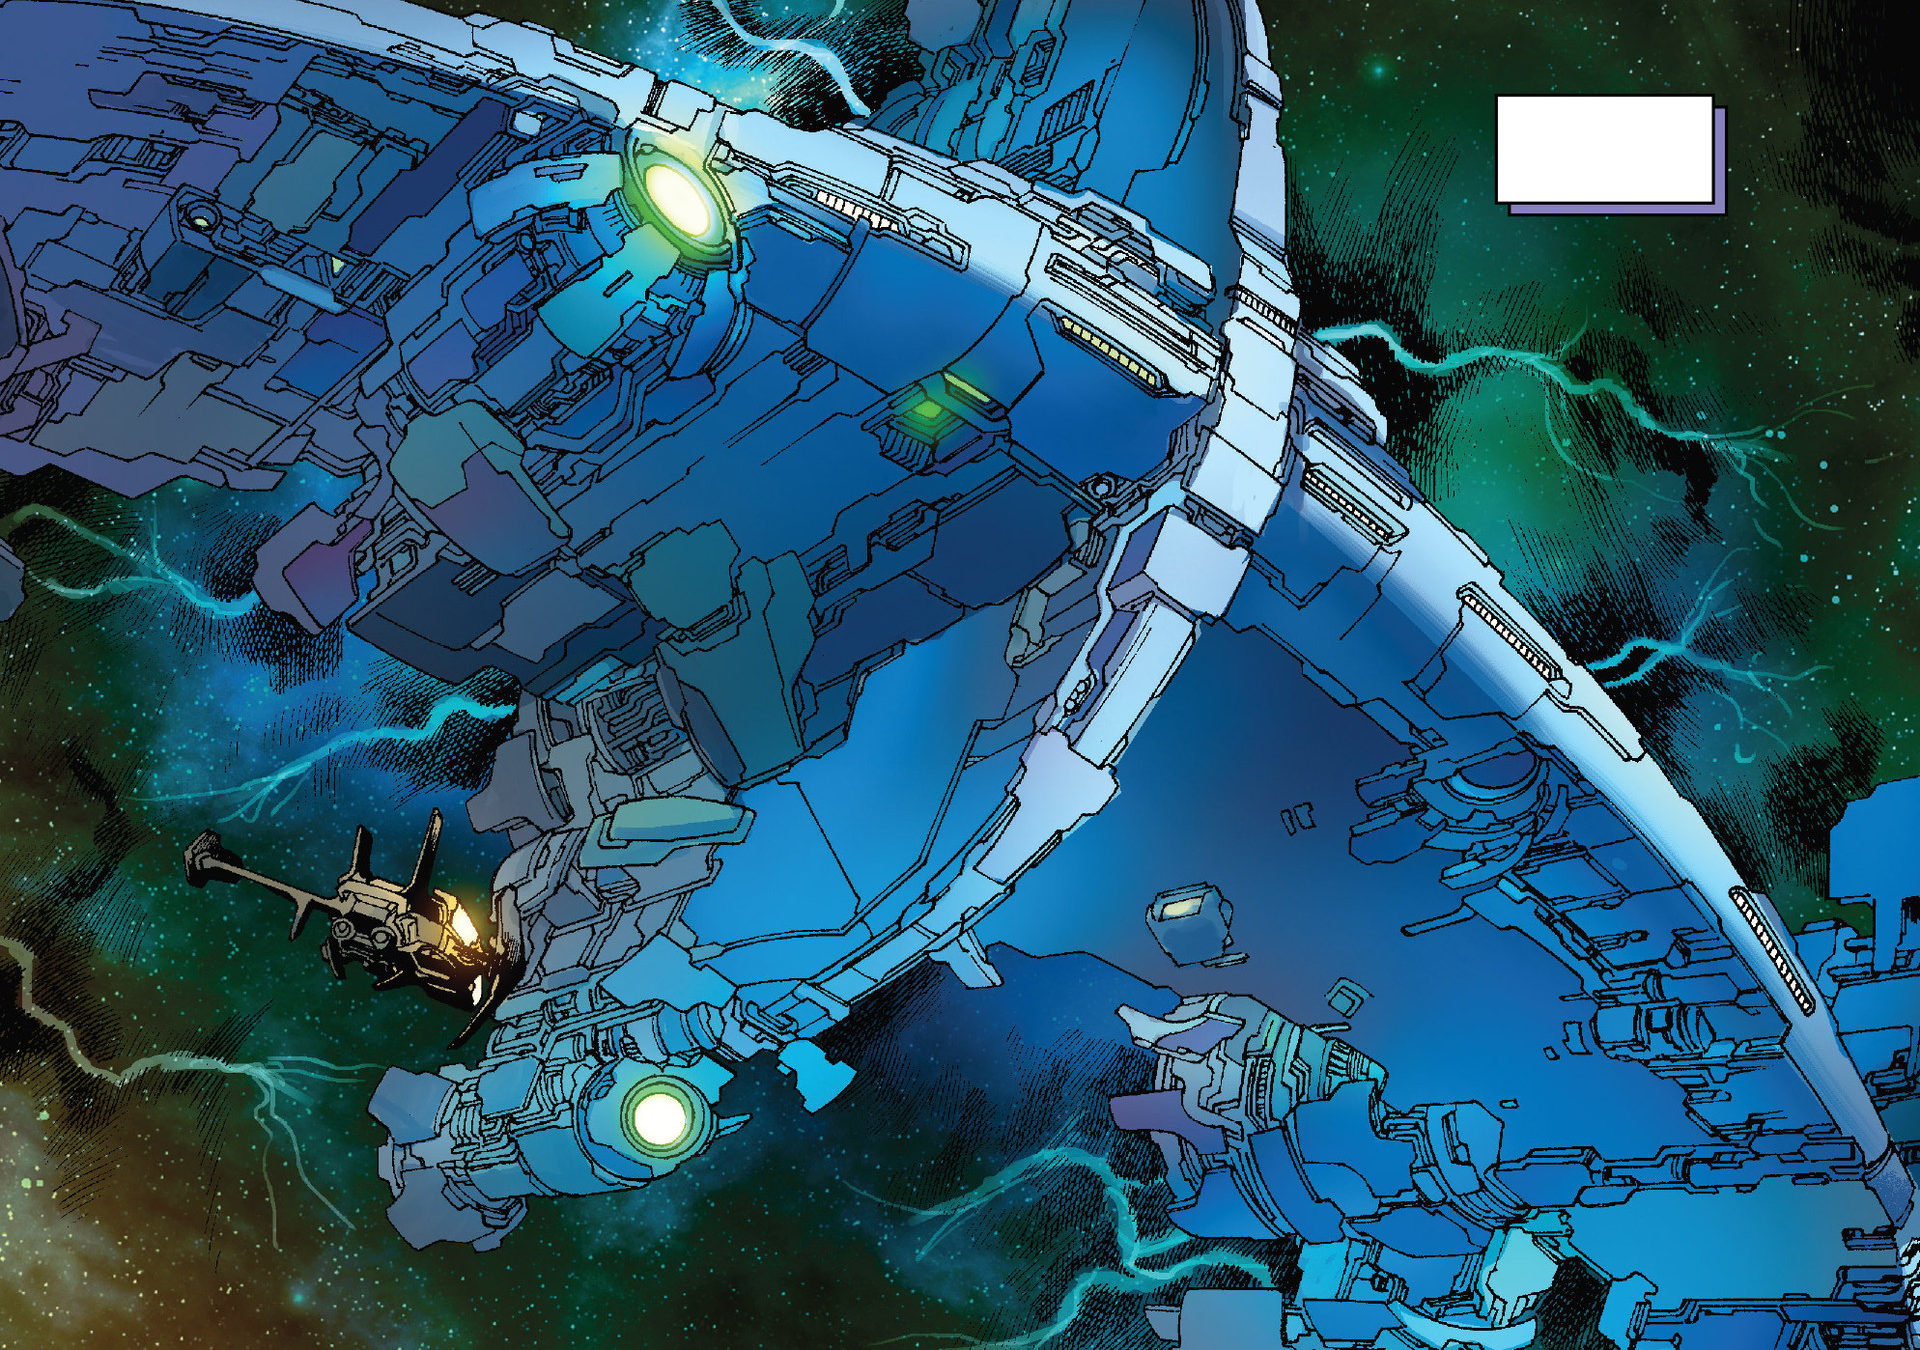 Lilandra__Spaceship__from_X-Men_Vol_4_19.png